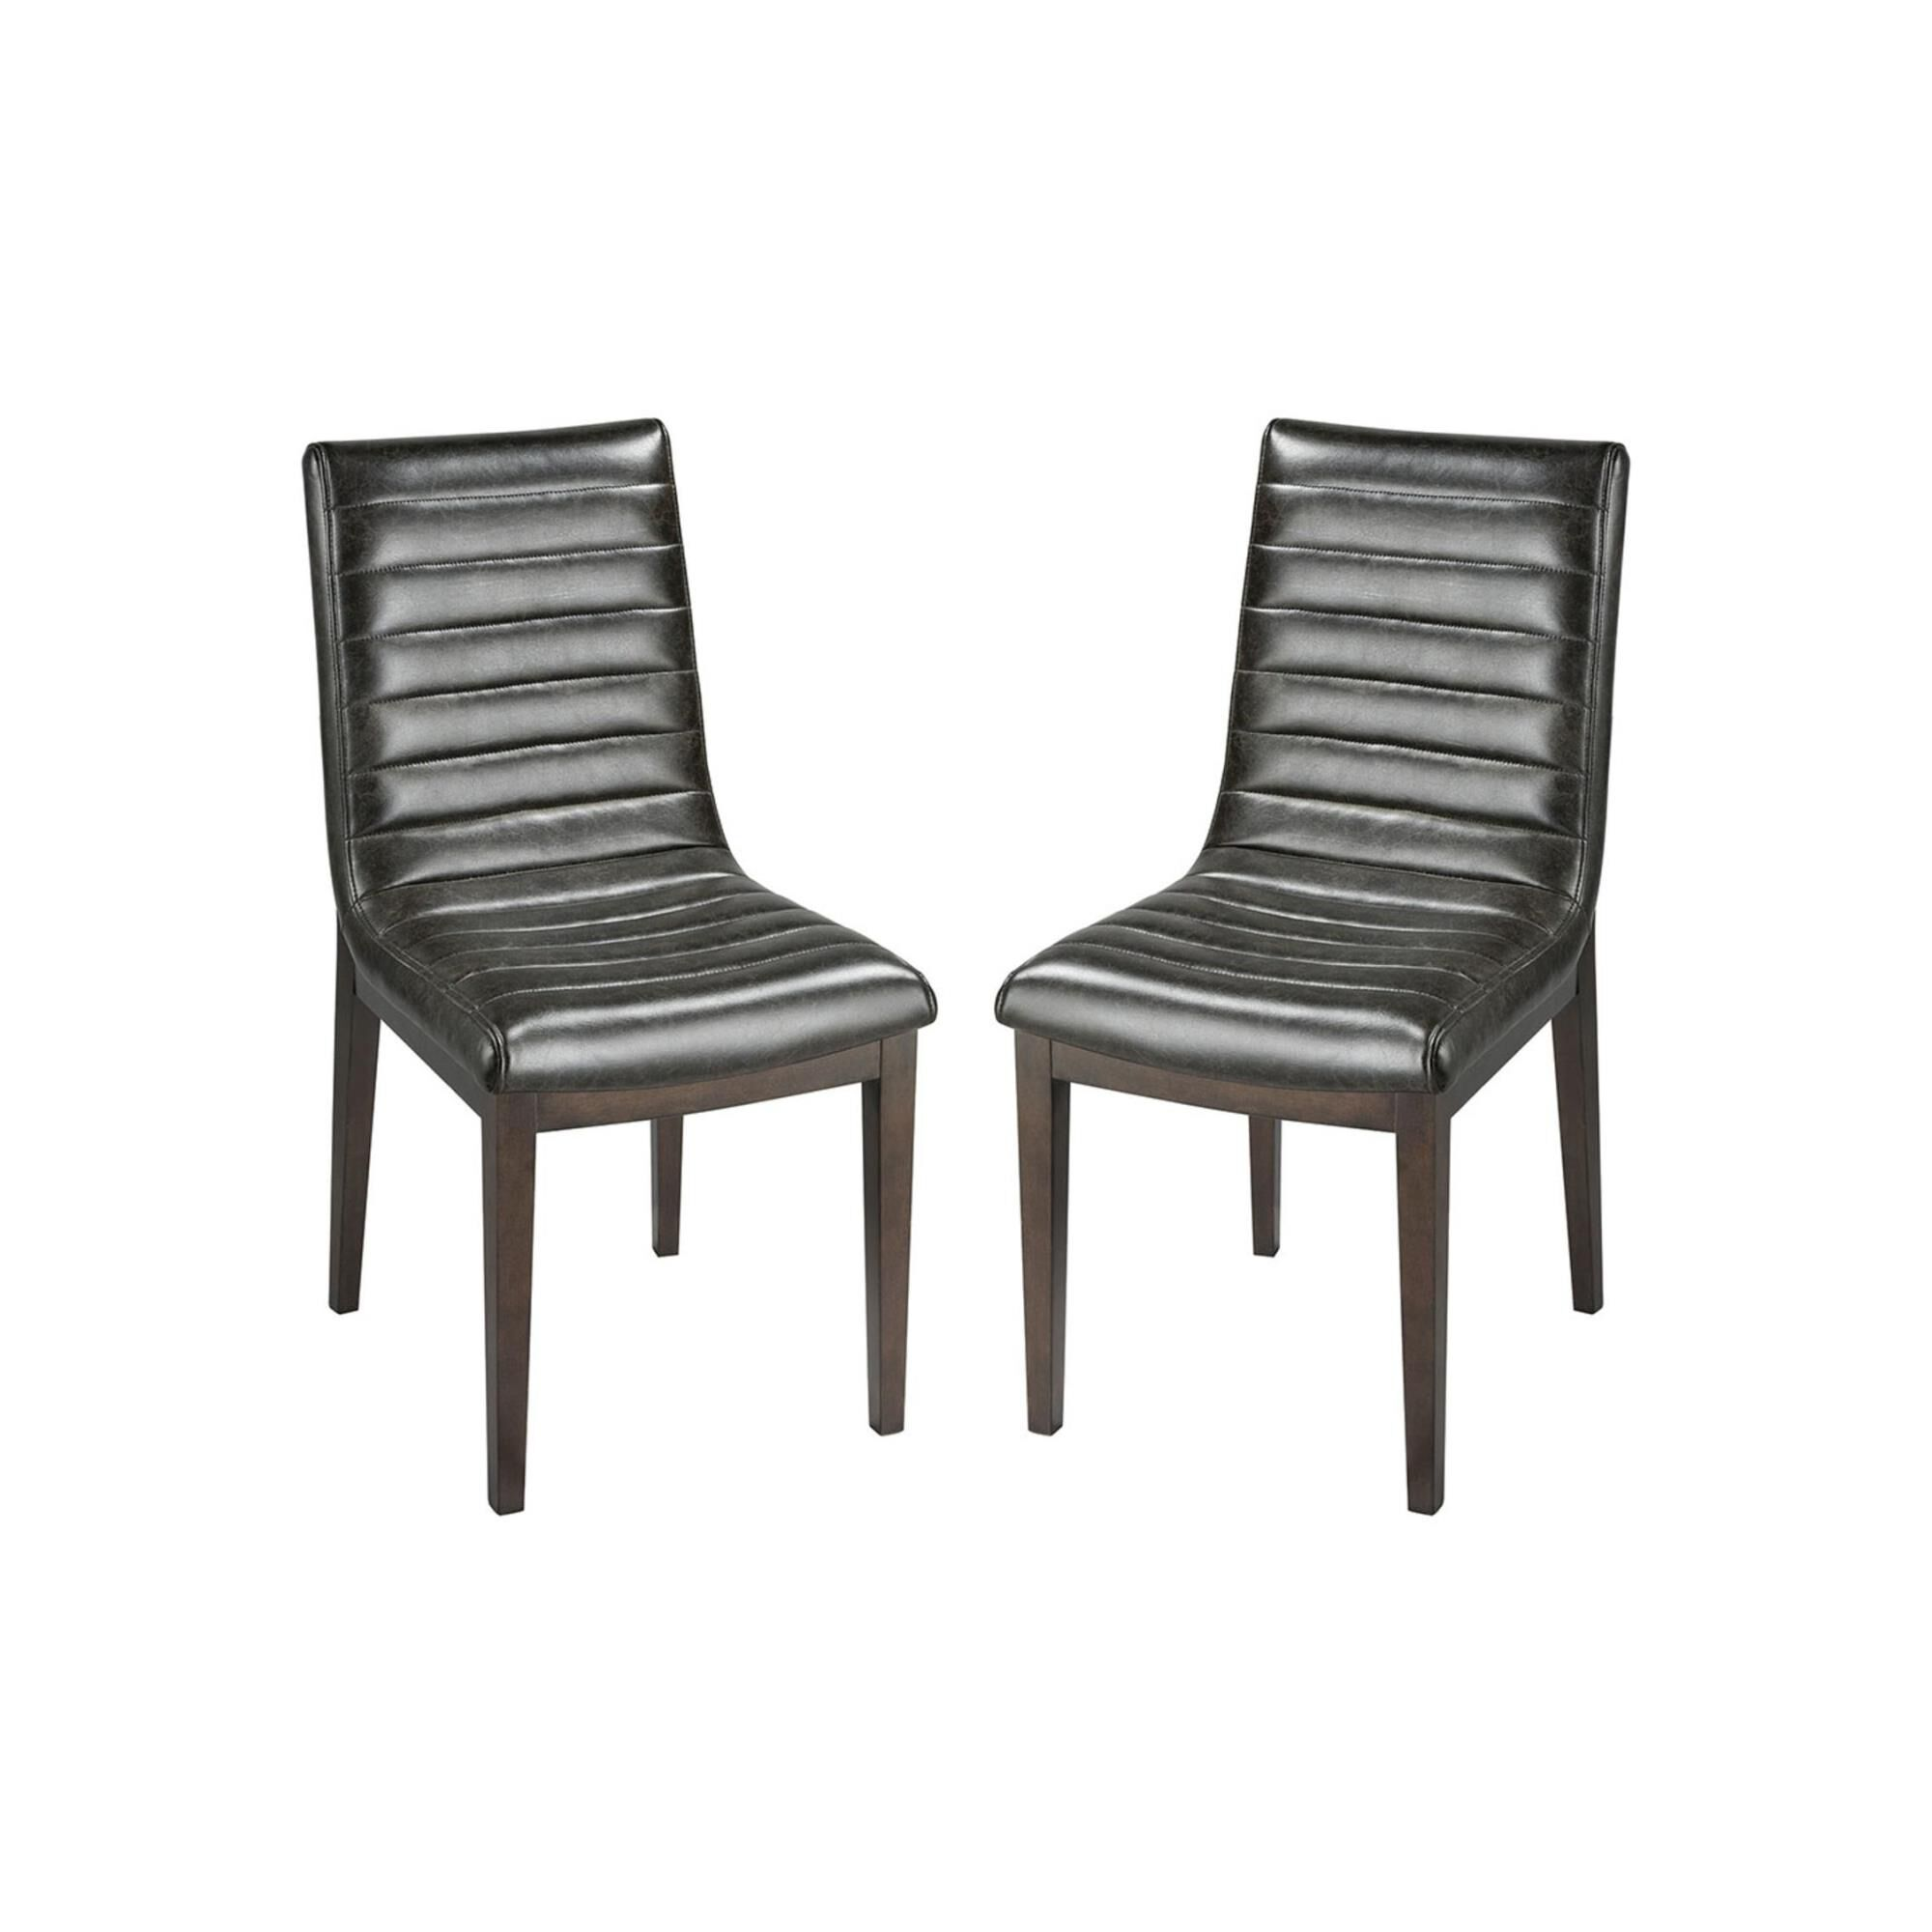 Sterling Industries Supperclub Dining Chair Supperclub - 1204-070/S2 - Transitional